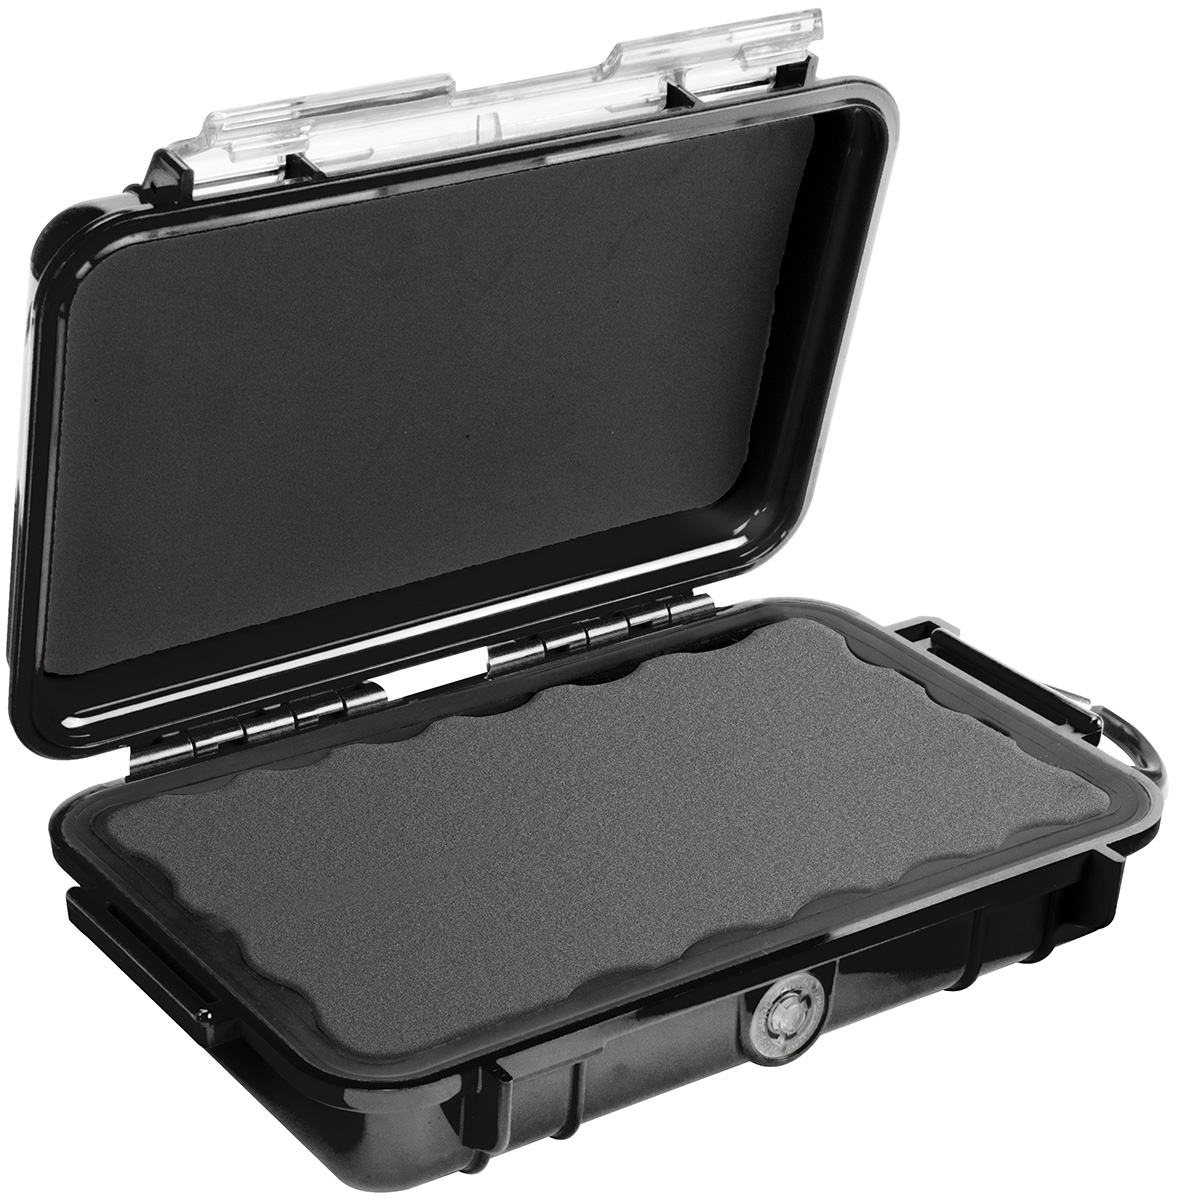 pelican peli products 1040 waterproof protection hardcase